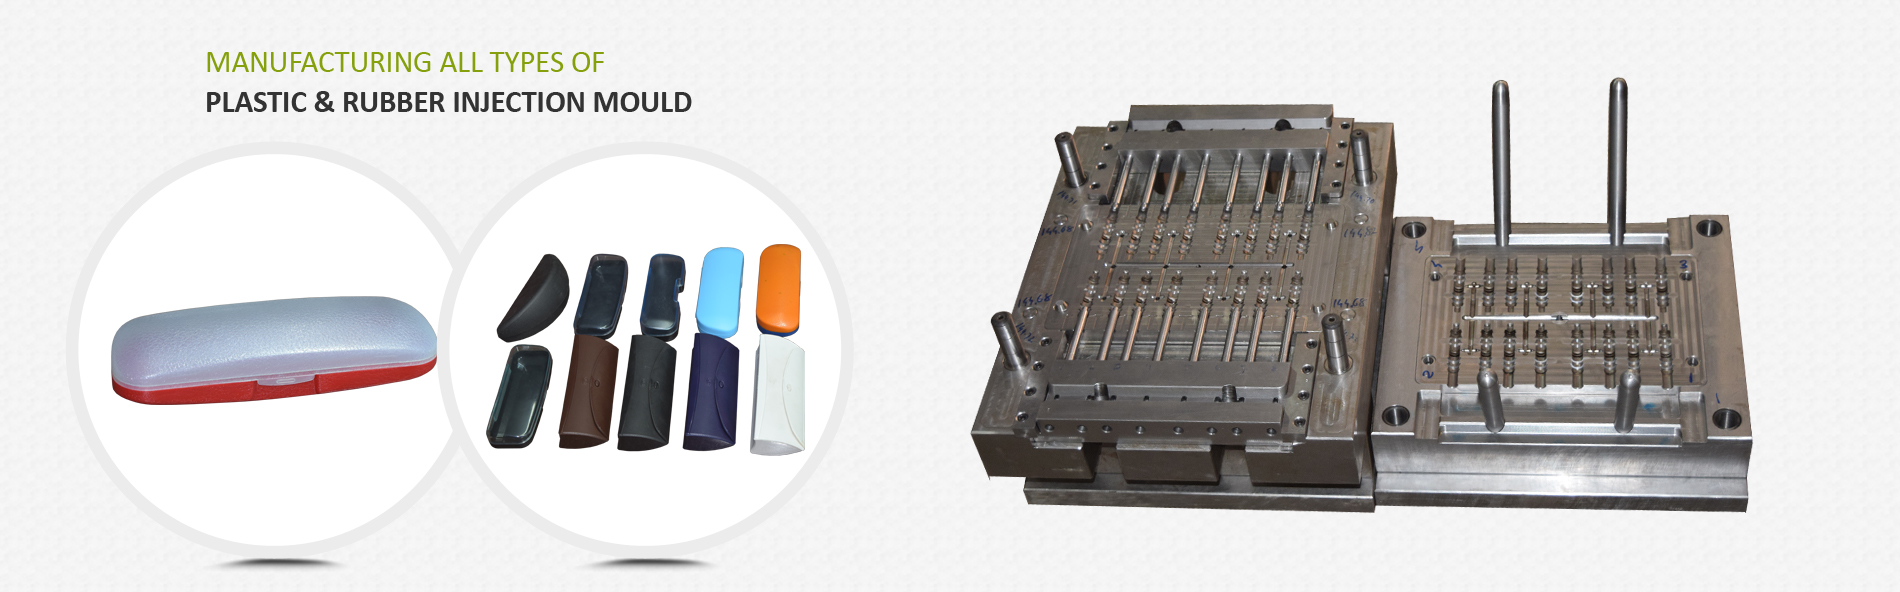 plastic injection moulding Pune,plastic injection moulding Bangalore,mould Ahmedabad,mould Mumbai,mould Chennai,mould Pune,mould Bangalore,rubber mould Ahmedabad,rubber mould Mumbai,rubber mould Chennai